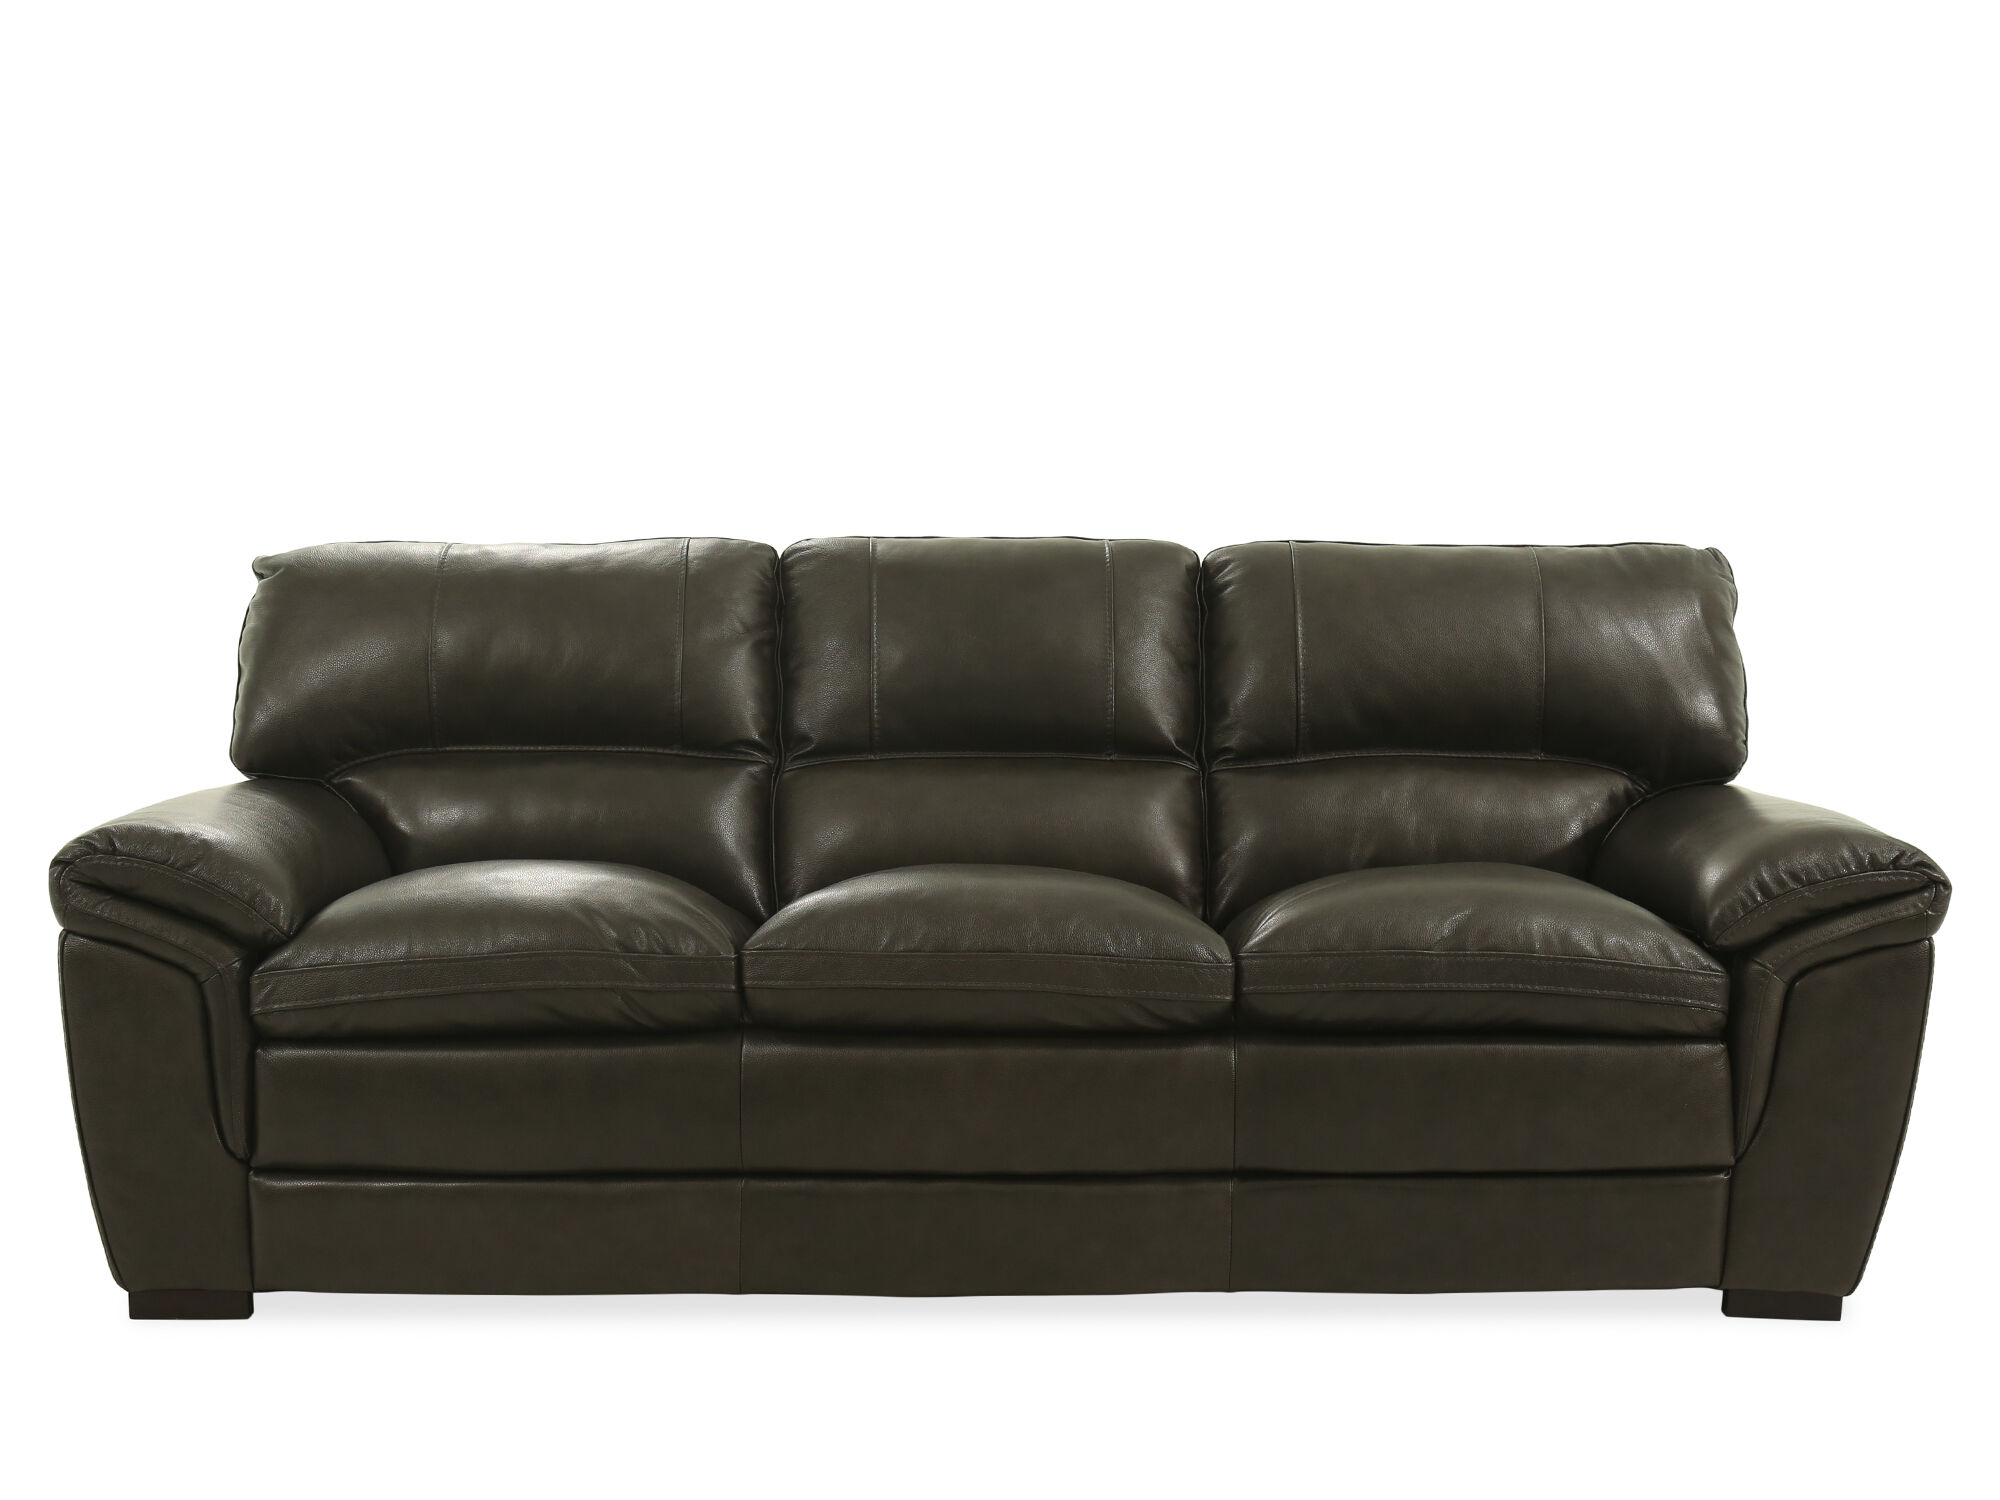 93 Leather Sofa in Dark Gray Mathis Brothers Furniture